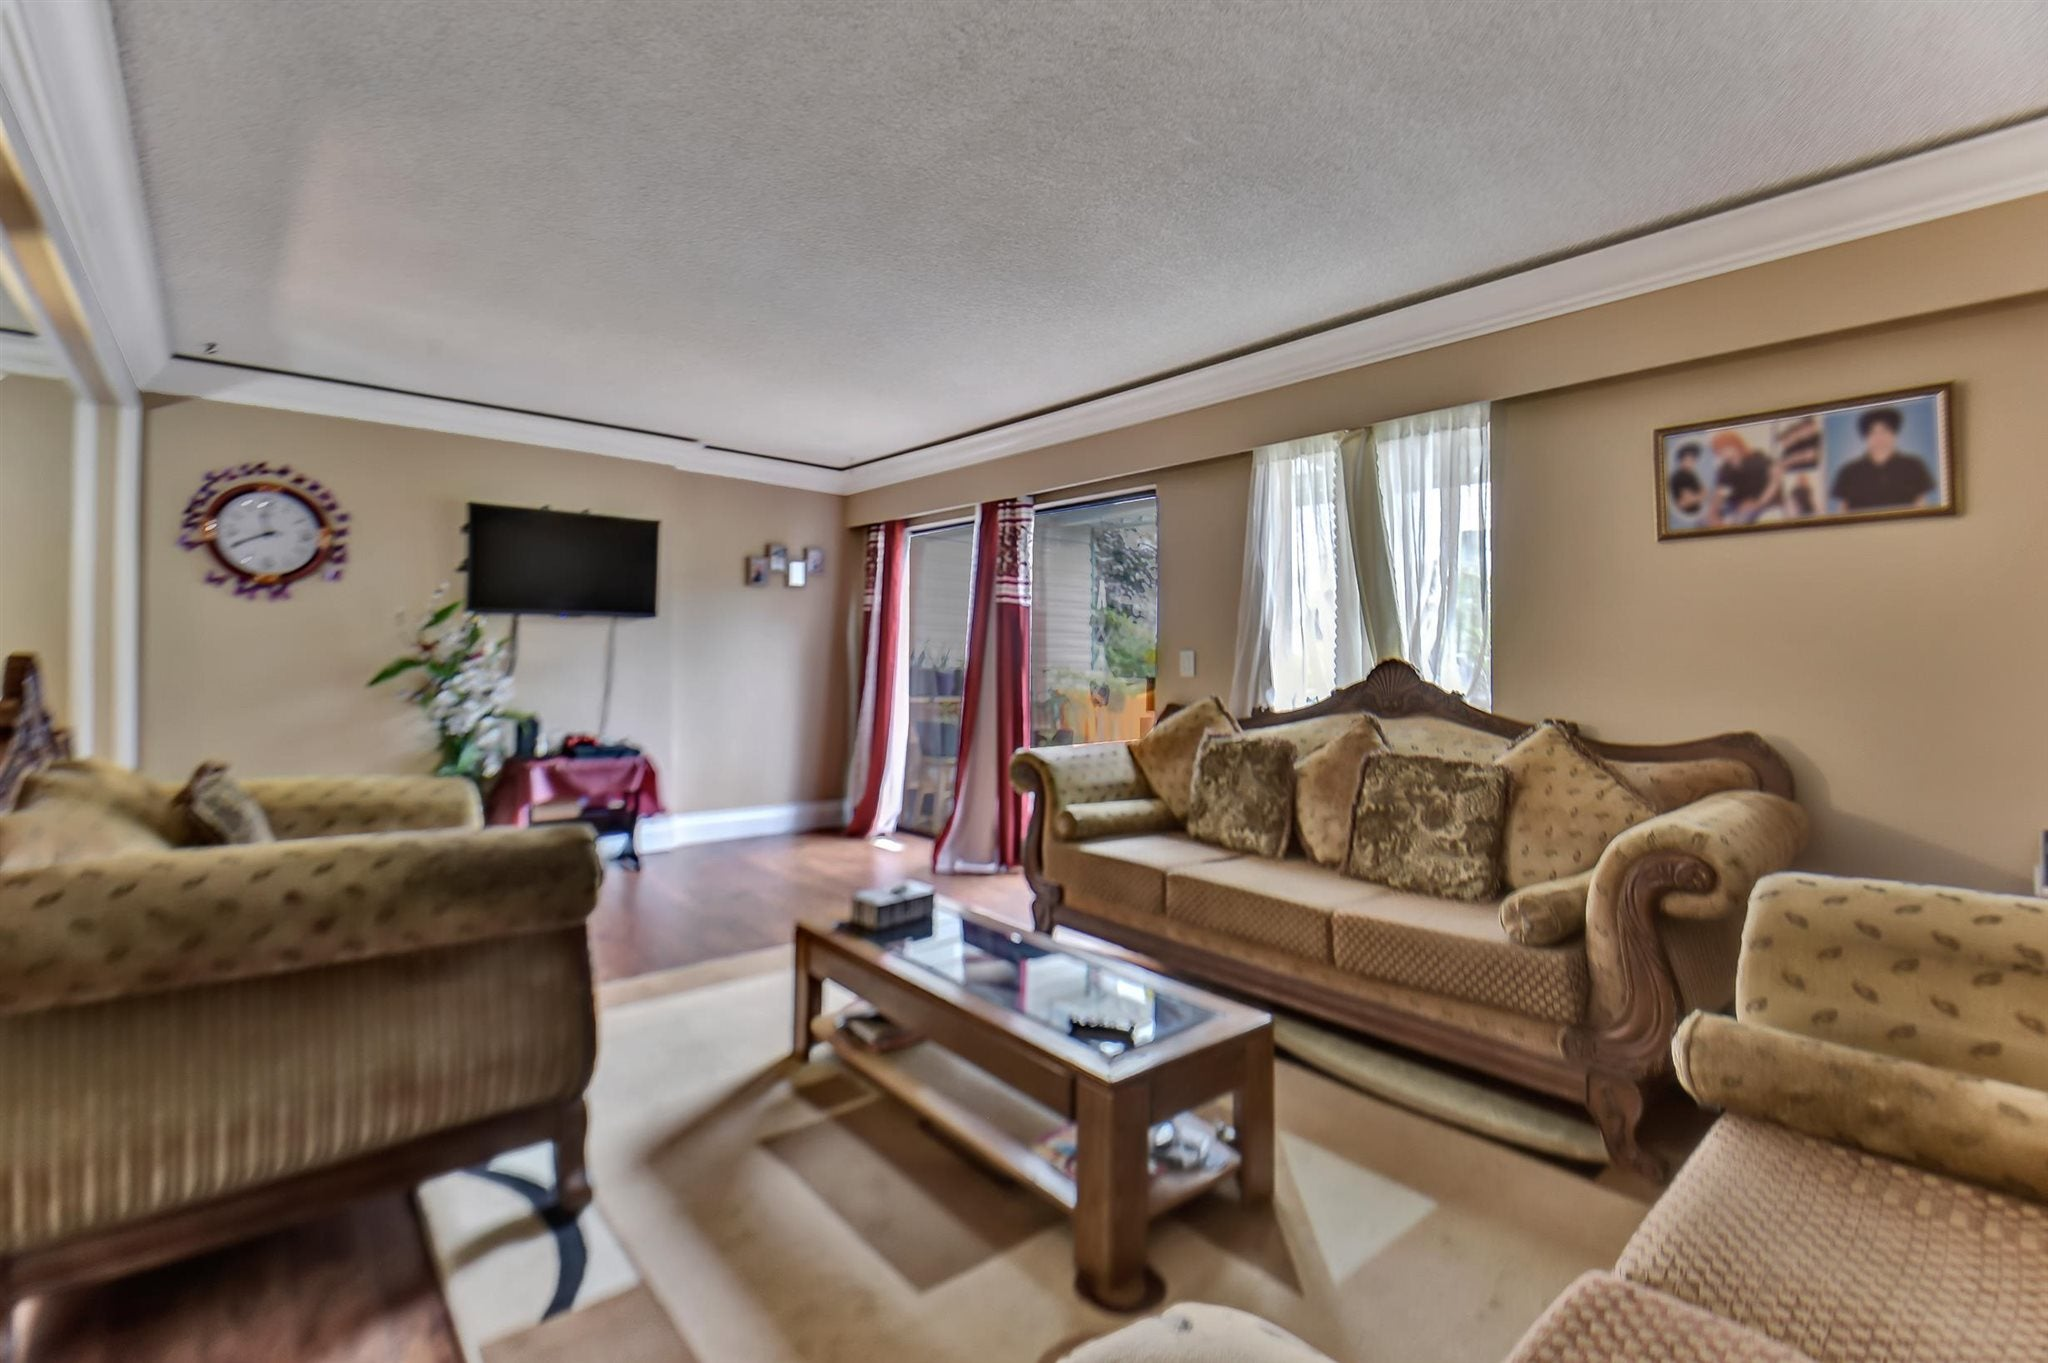 31 12045 93A AVENUE - Queen Mary Park Surrey Townhouse for sale, 4 Bedrooms (R2603608) - #9